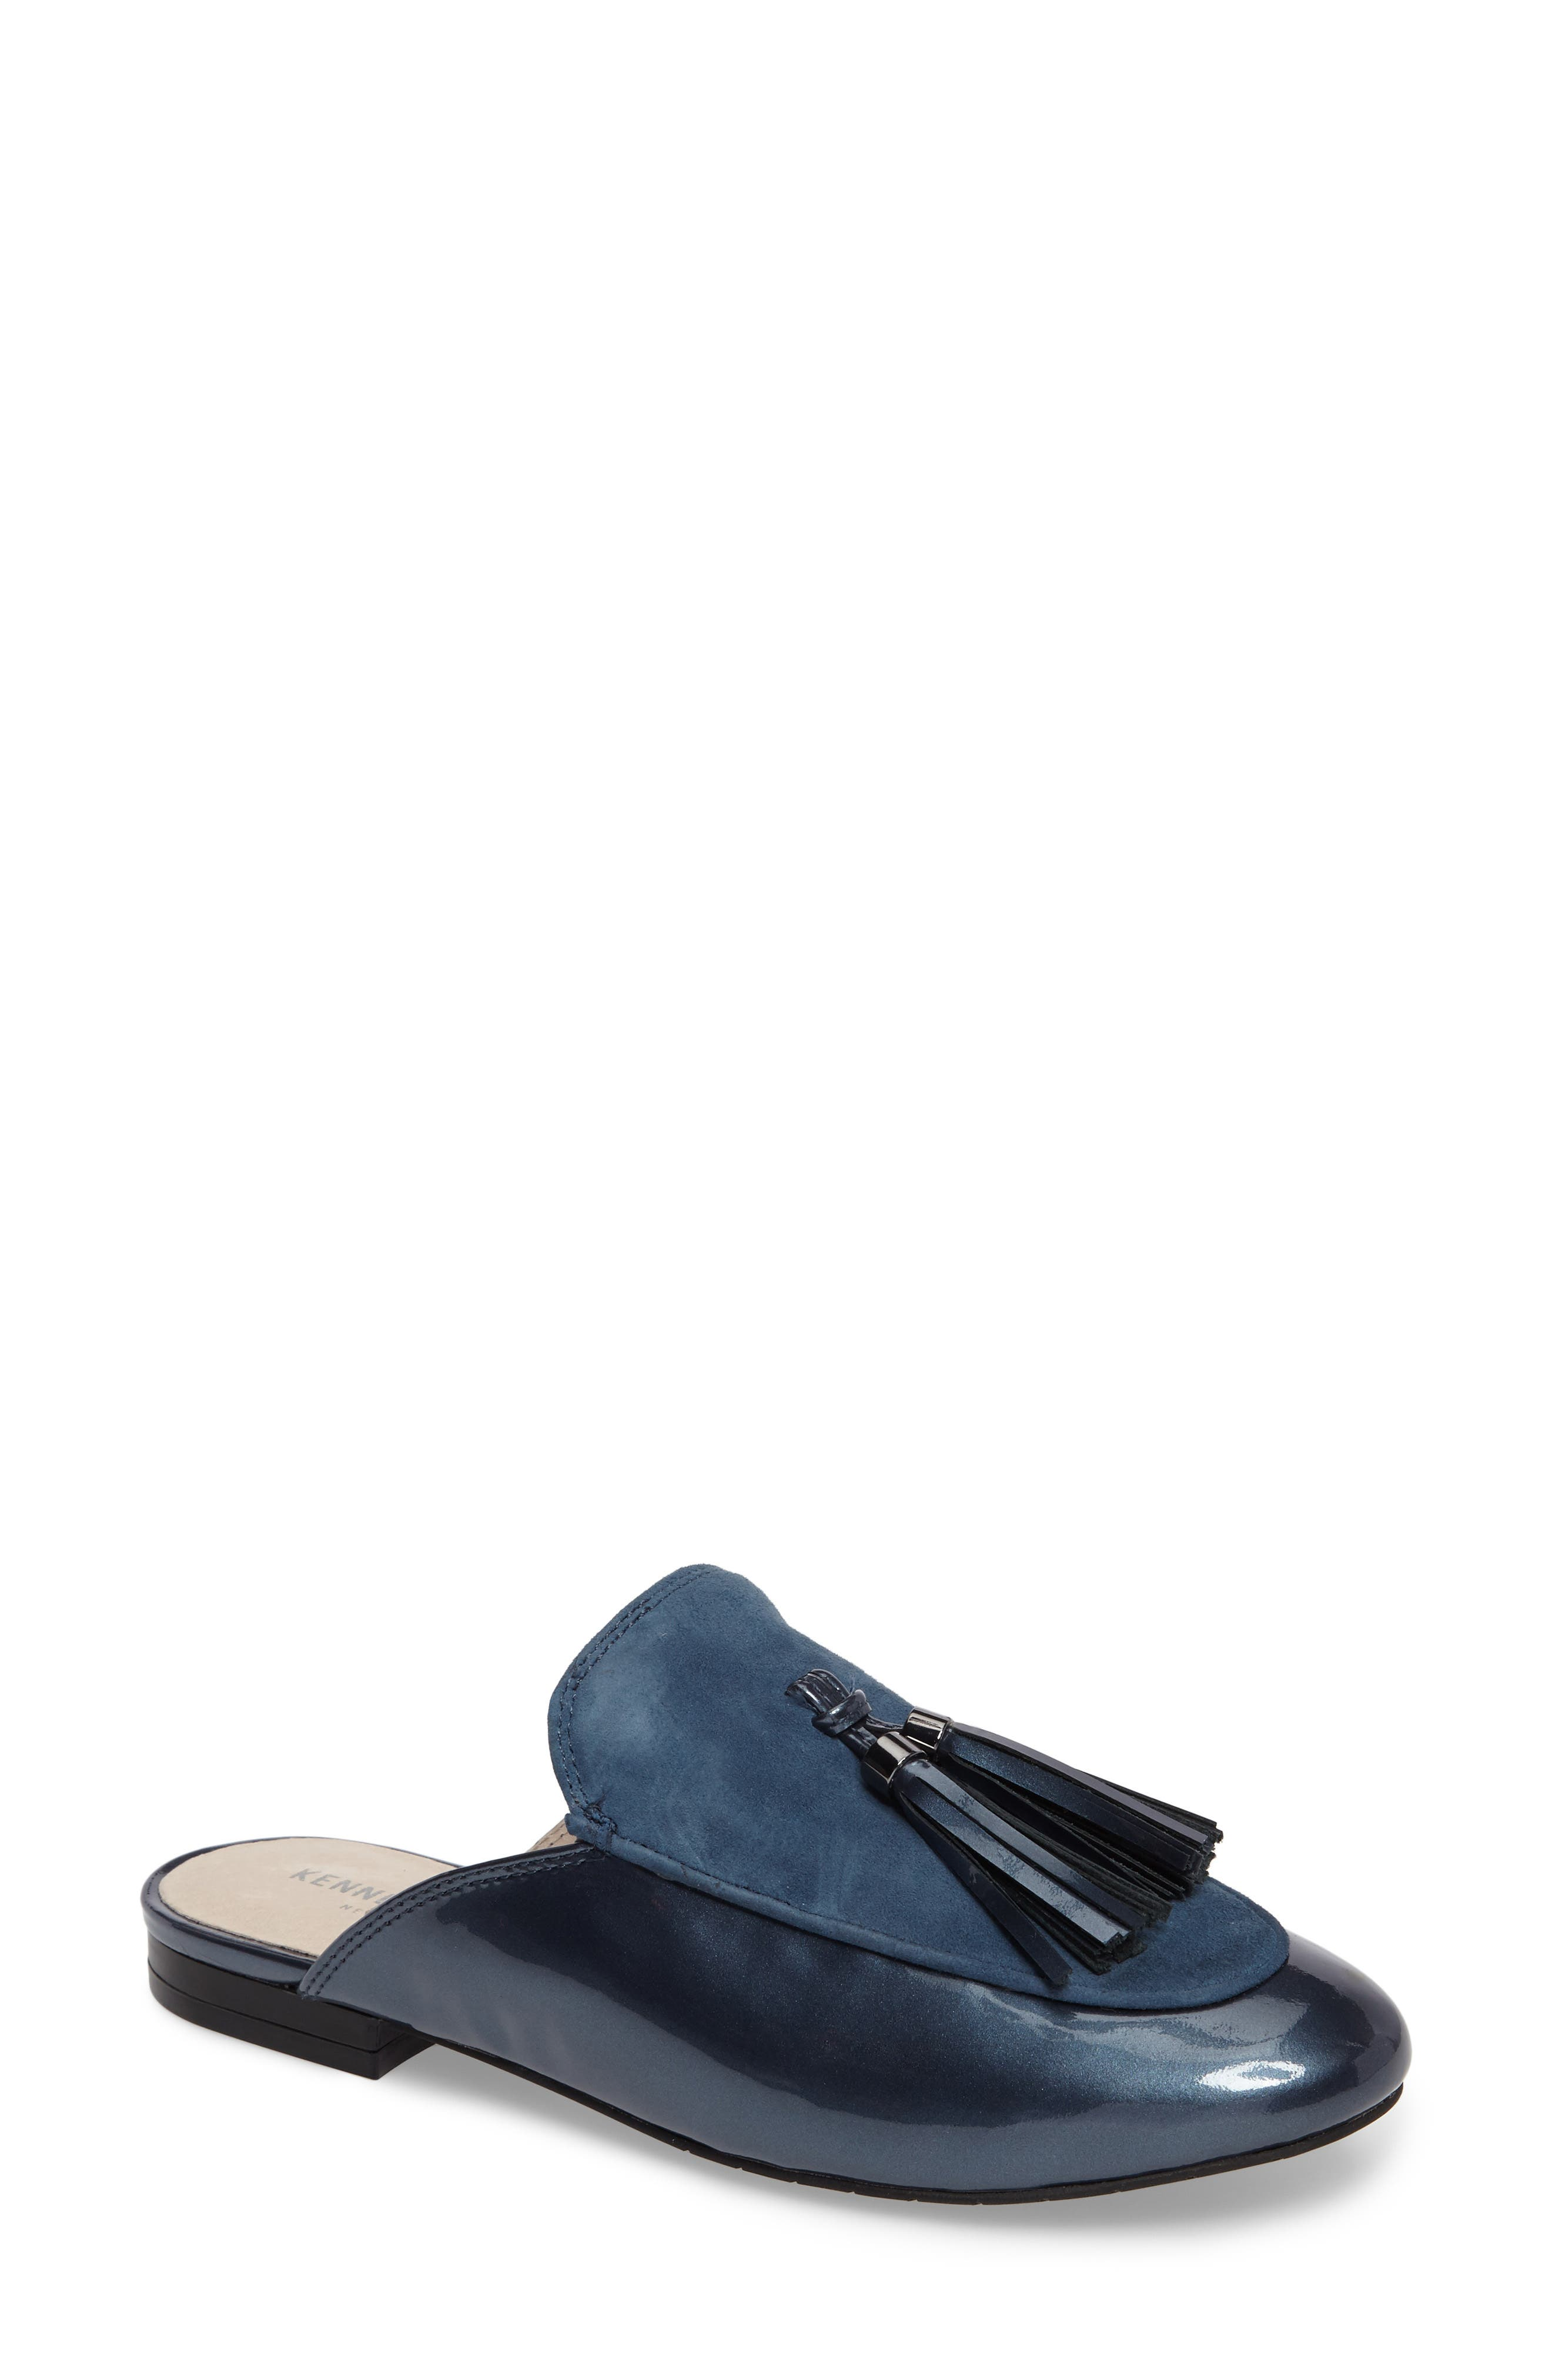 Whinnie Loafer Mule,                             Main thumbnail 1, color,                             Indigo Patent Leather